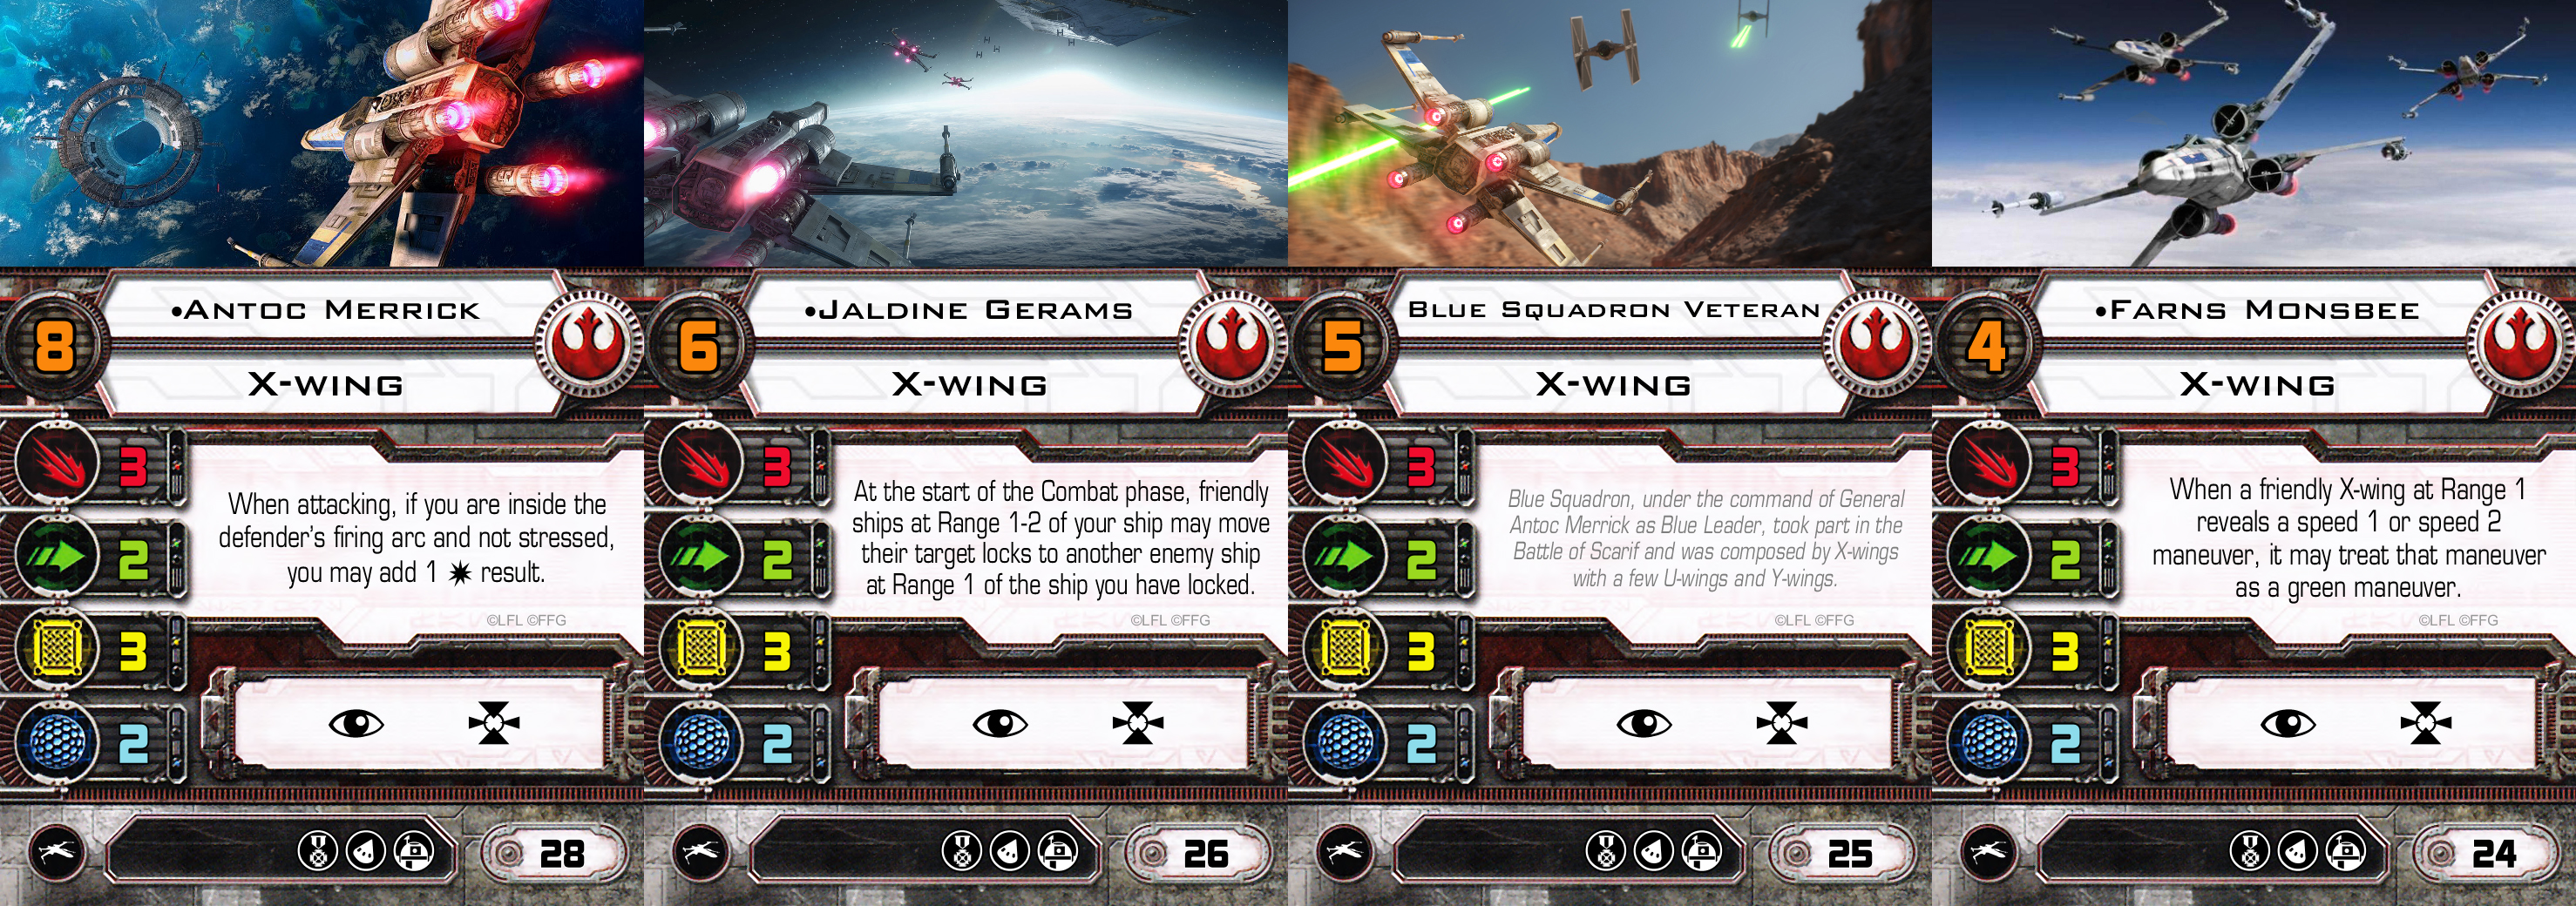 x_wing_miniatures___x_wing_ace_pilots_by